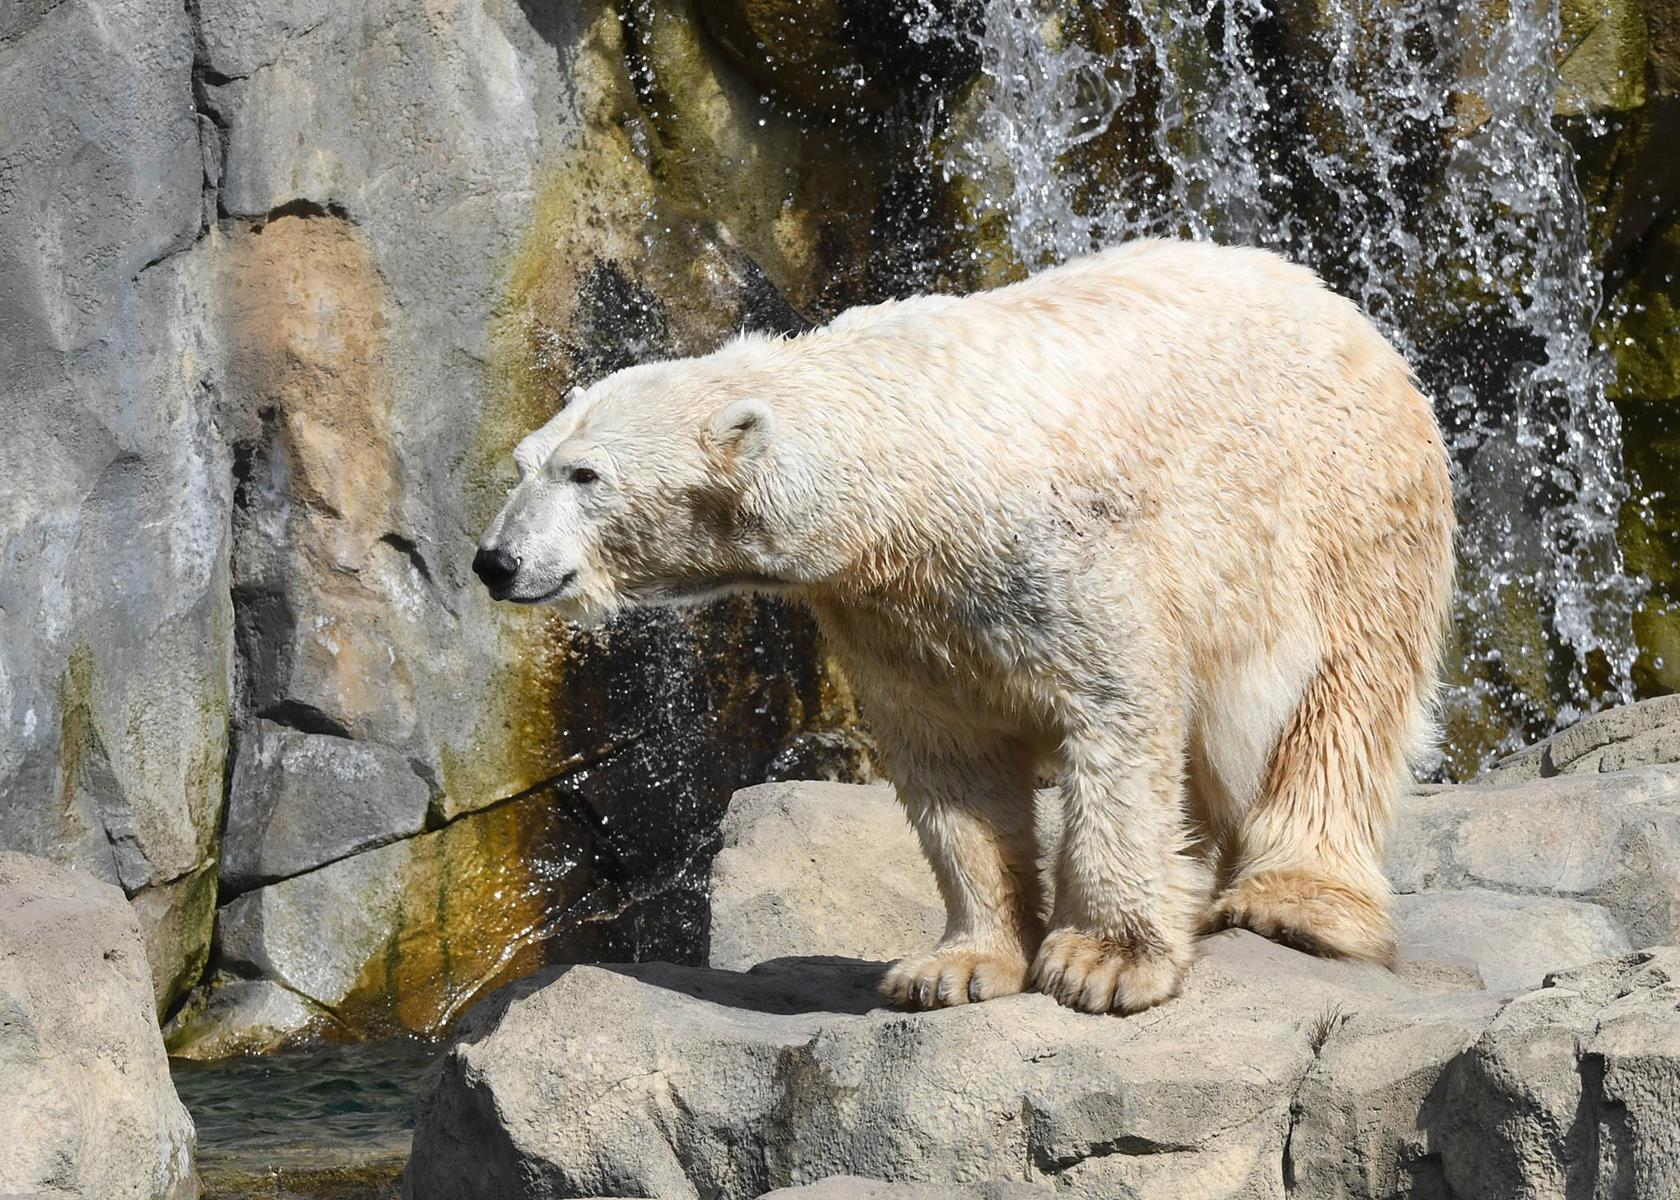 6084: A polar bear at Brookfield Zoo's Great Bear Wilderness. Photo: Chicago Zoological Society.